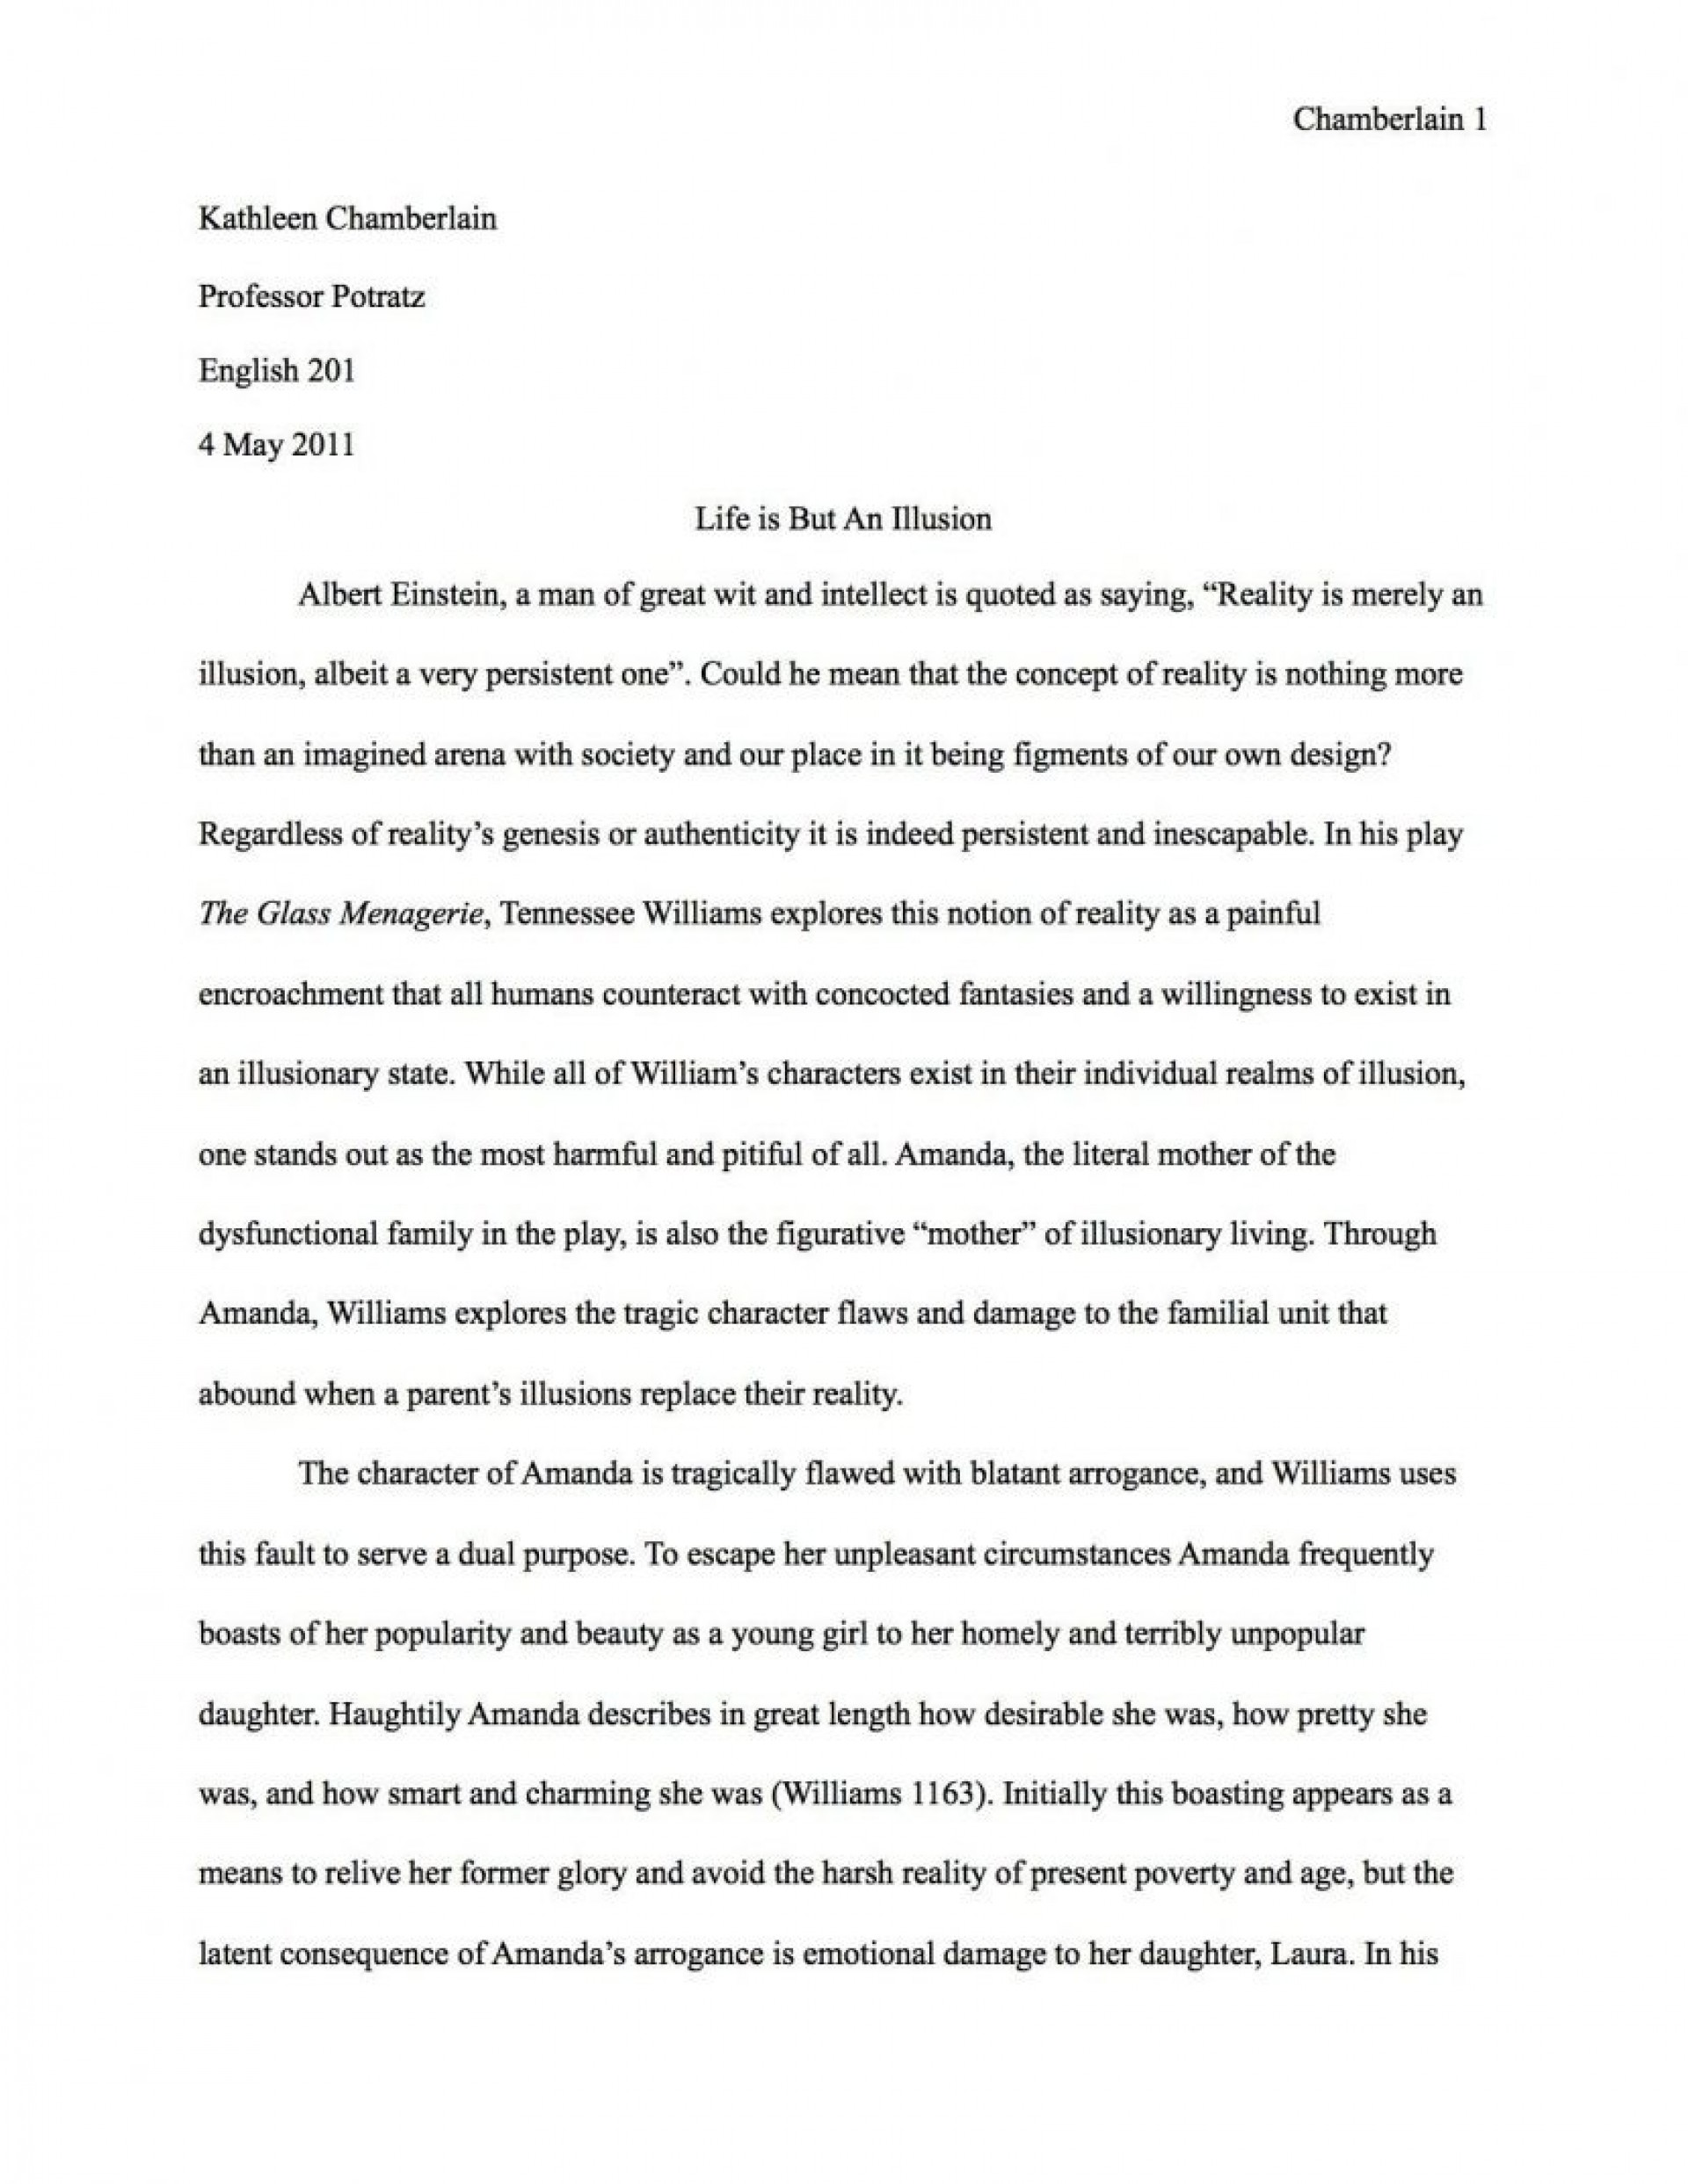 007 Introduction Paragraphle Apales And Forms How To Write An Interview Essay Sample Style General Writing Tips Intended For Pertaini Excellent Example Paper In Apa Format 1920